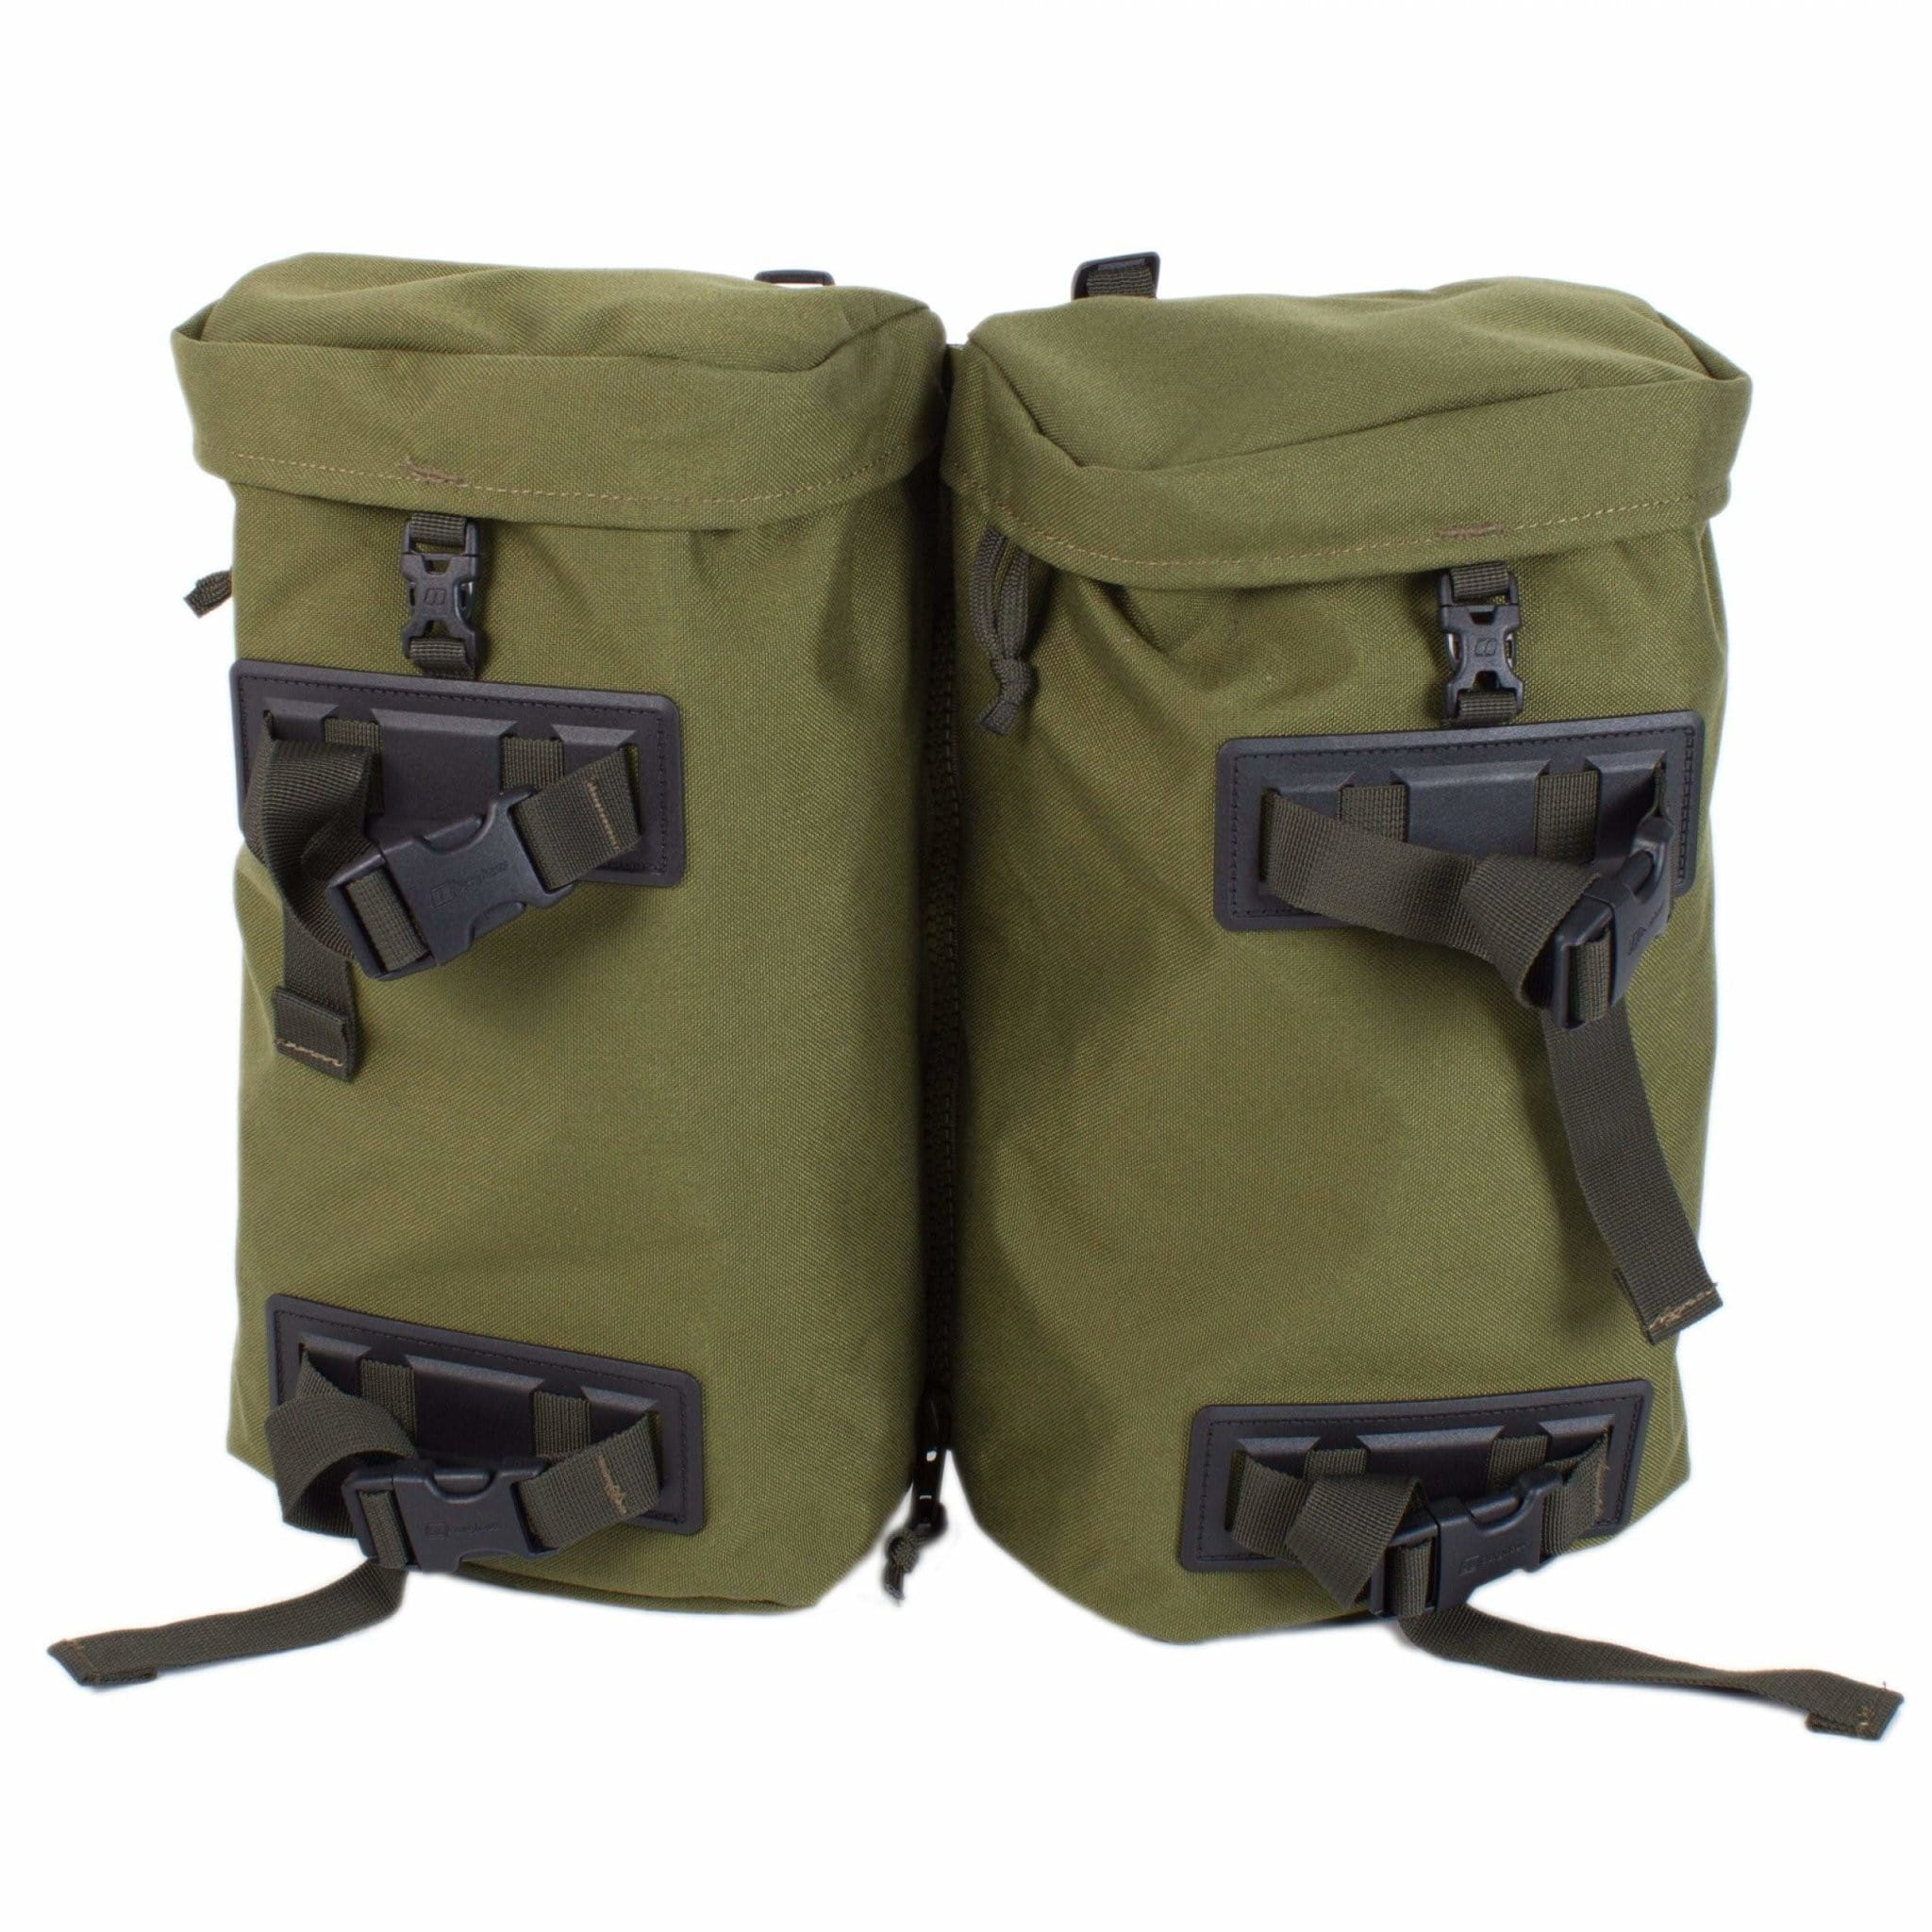 Berghaus MMPS Pockets II 2x Olive 10 l - CHK-SHIELD | Outdoor Army - Tactical Gear Shop